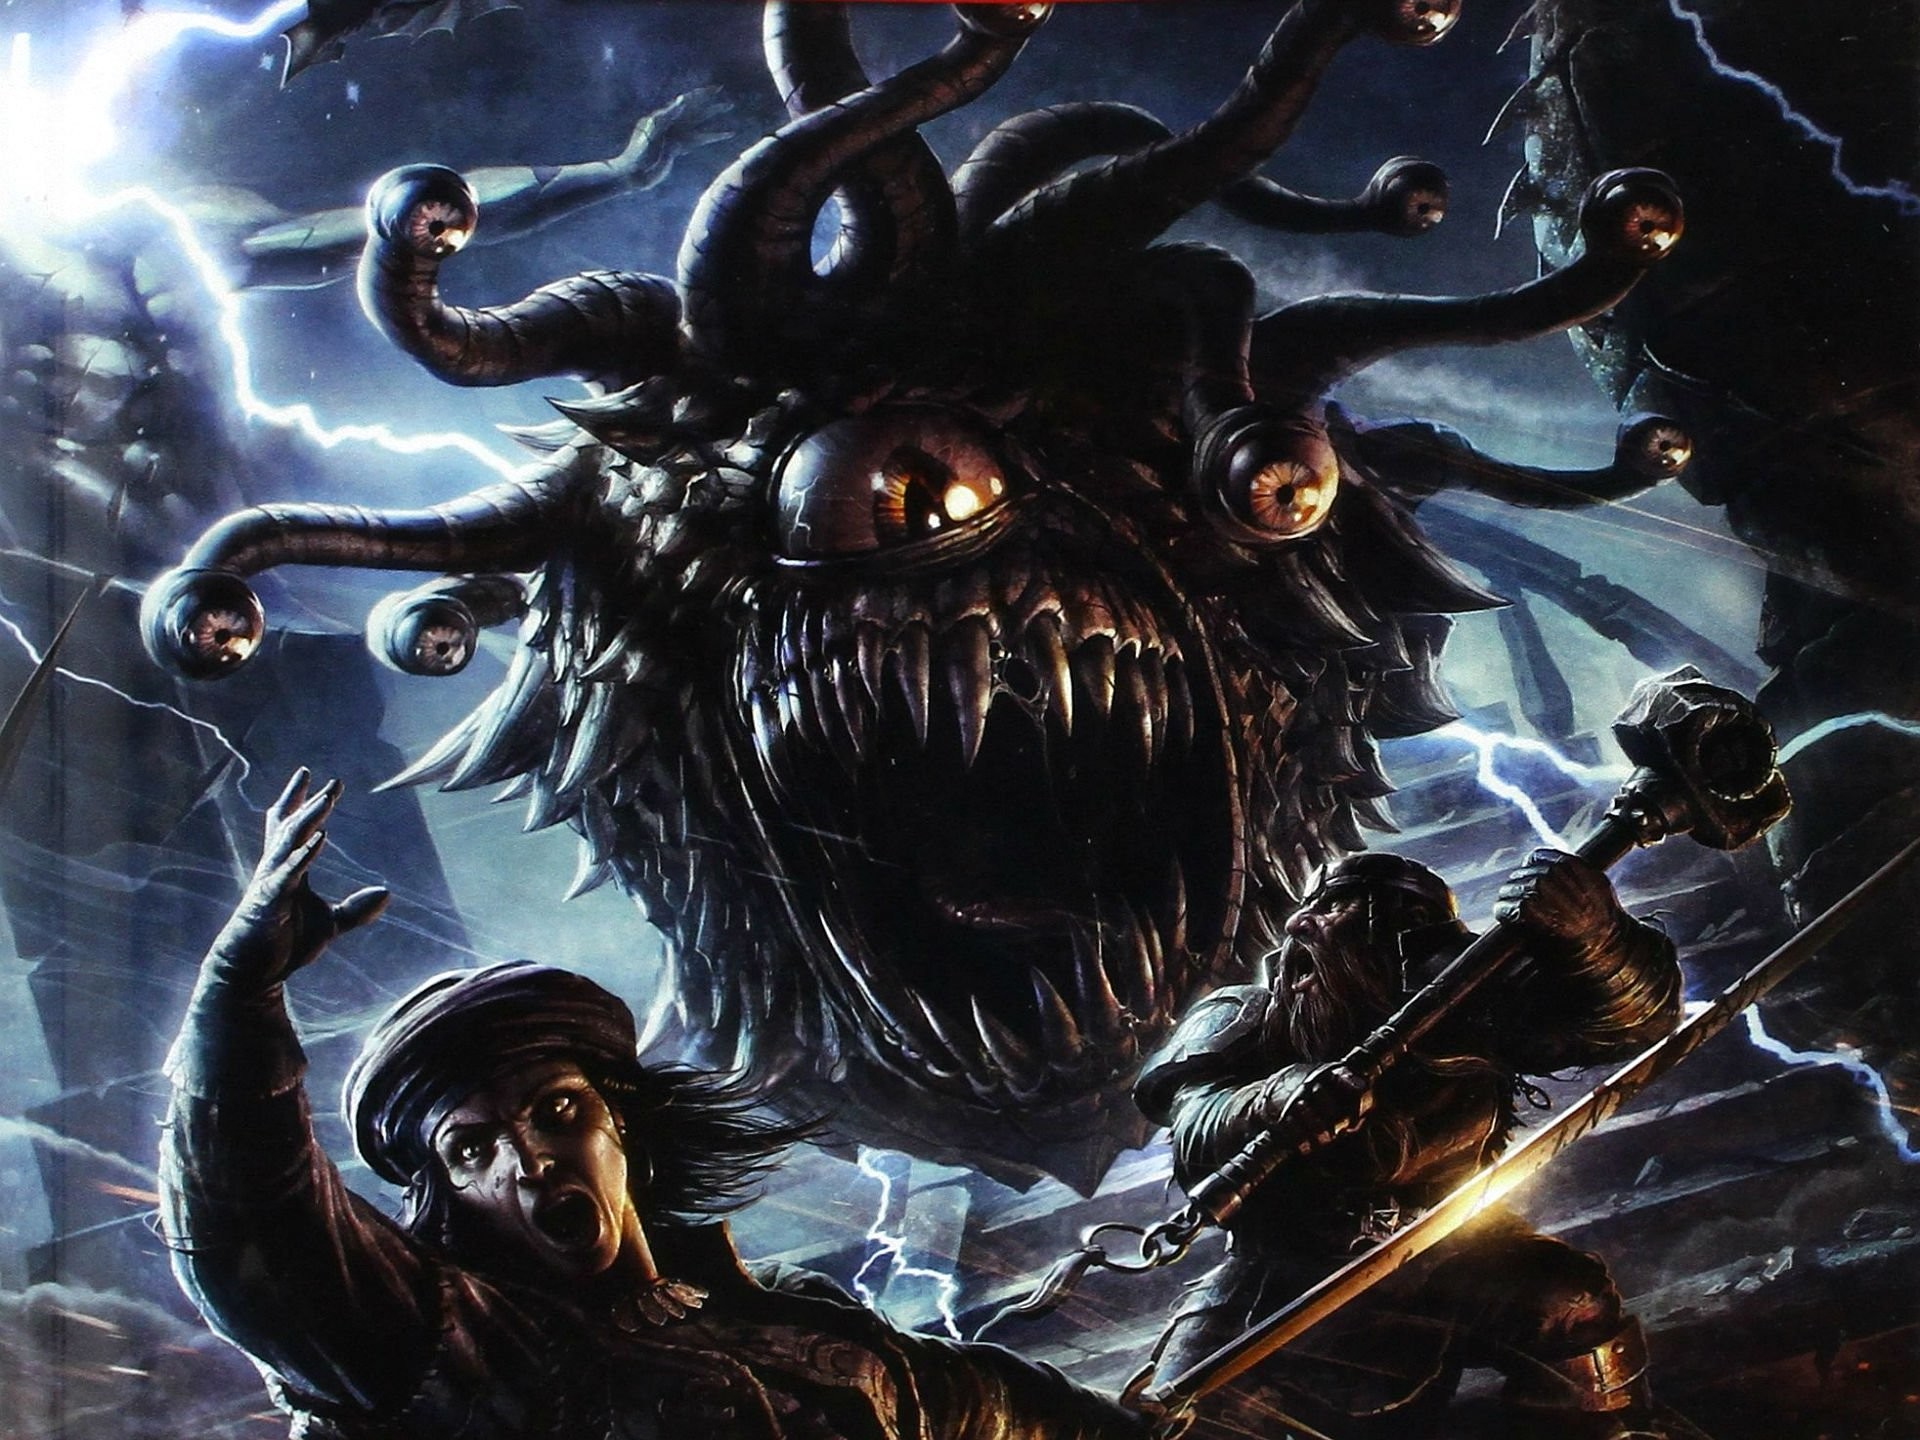 DUNGEONS DRAGONS Forgotten Realms magic rpg action adventure puzzle fantasy  monster creature wallpaper | | 821411 | WallpaperUP